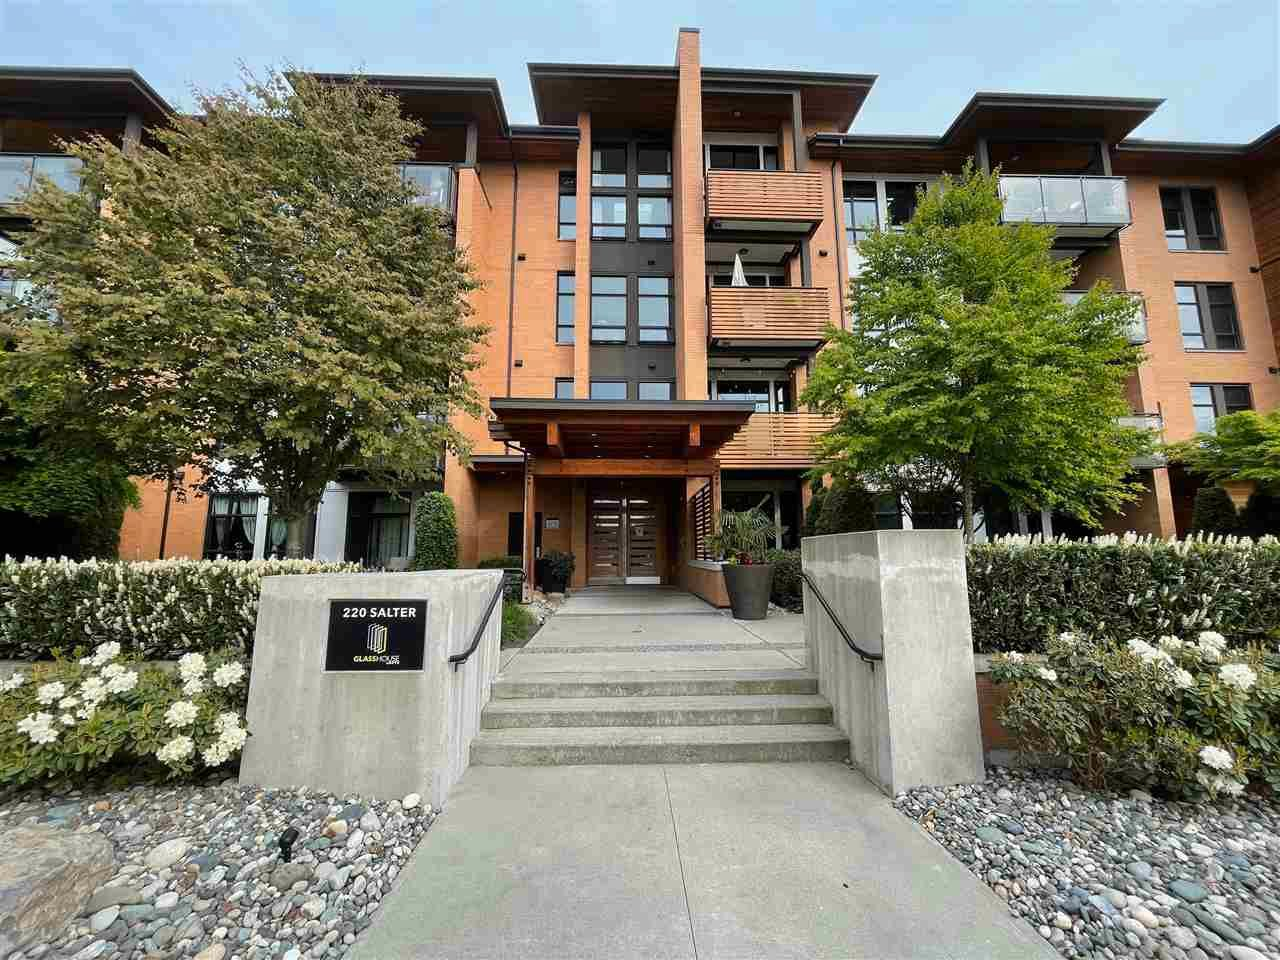 Main Photo: 205 220 SALTER Street in New Westminster: Queensborough Condo for sale : MLS®# R2574068